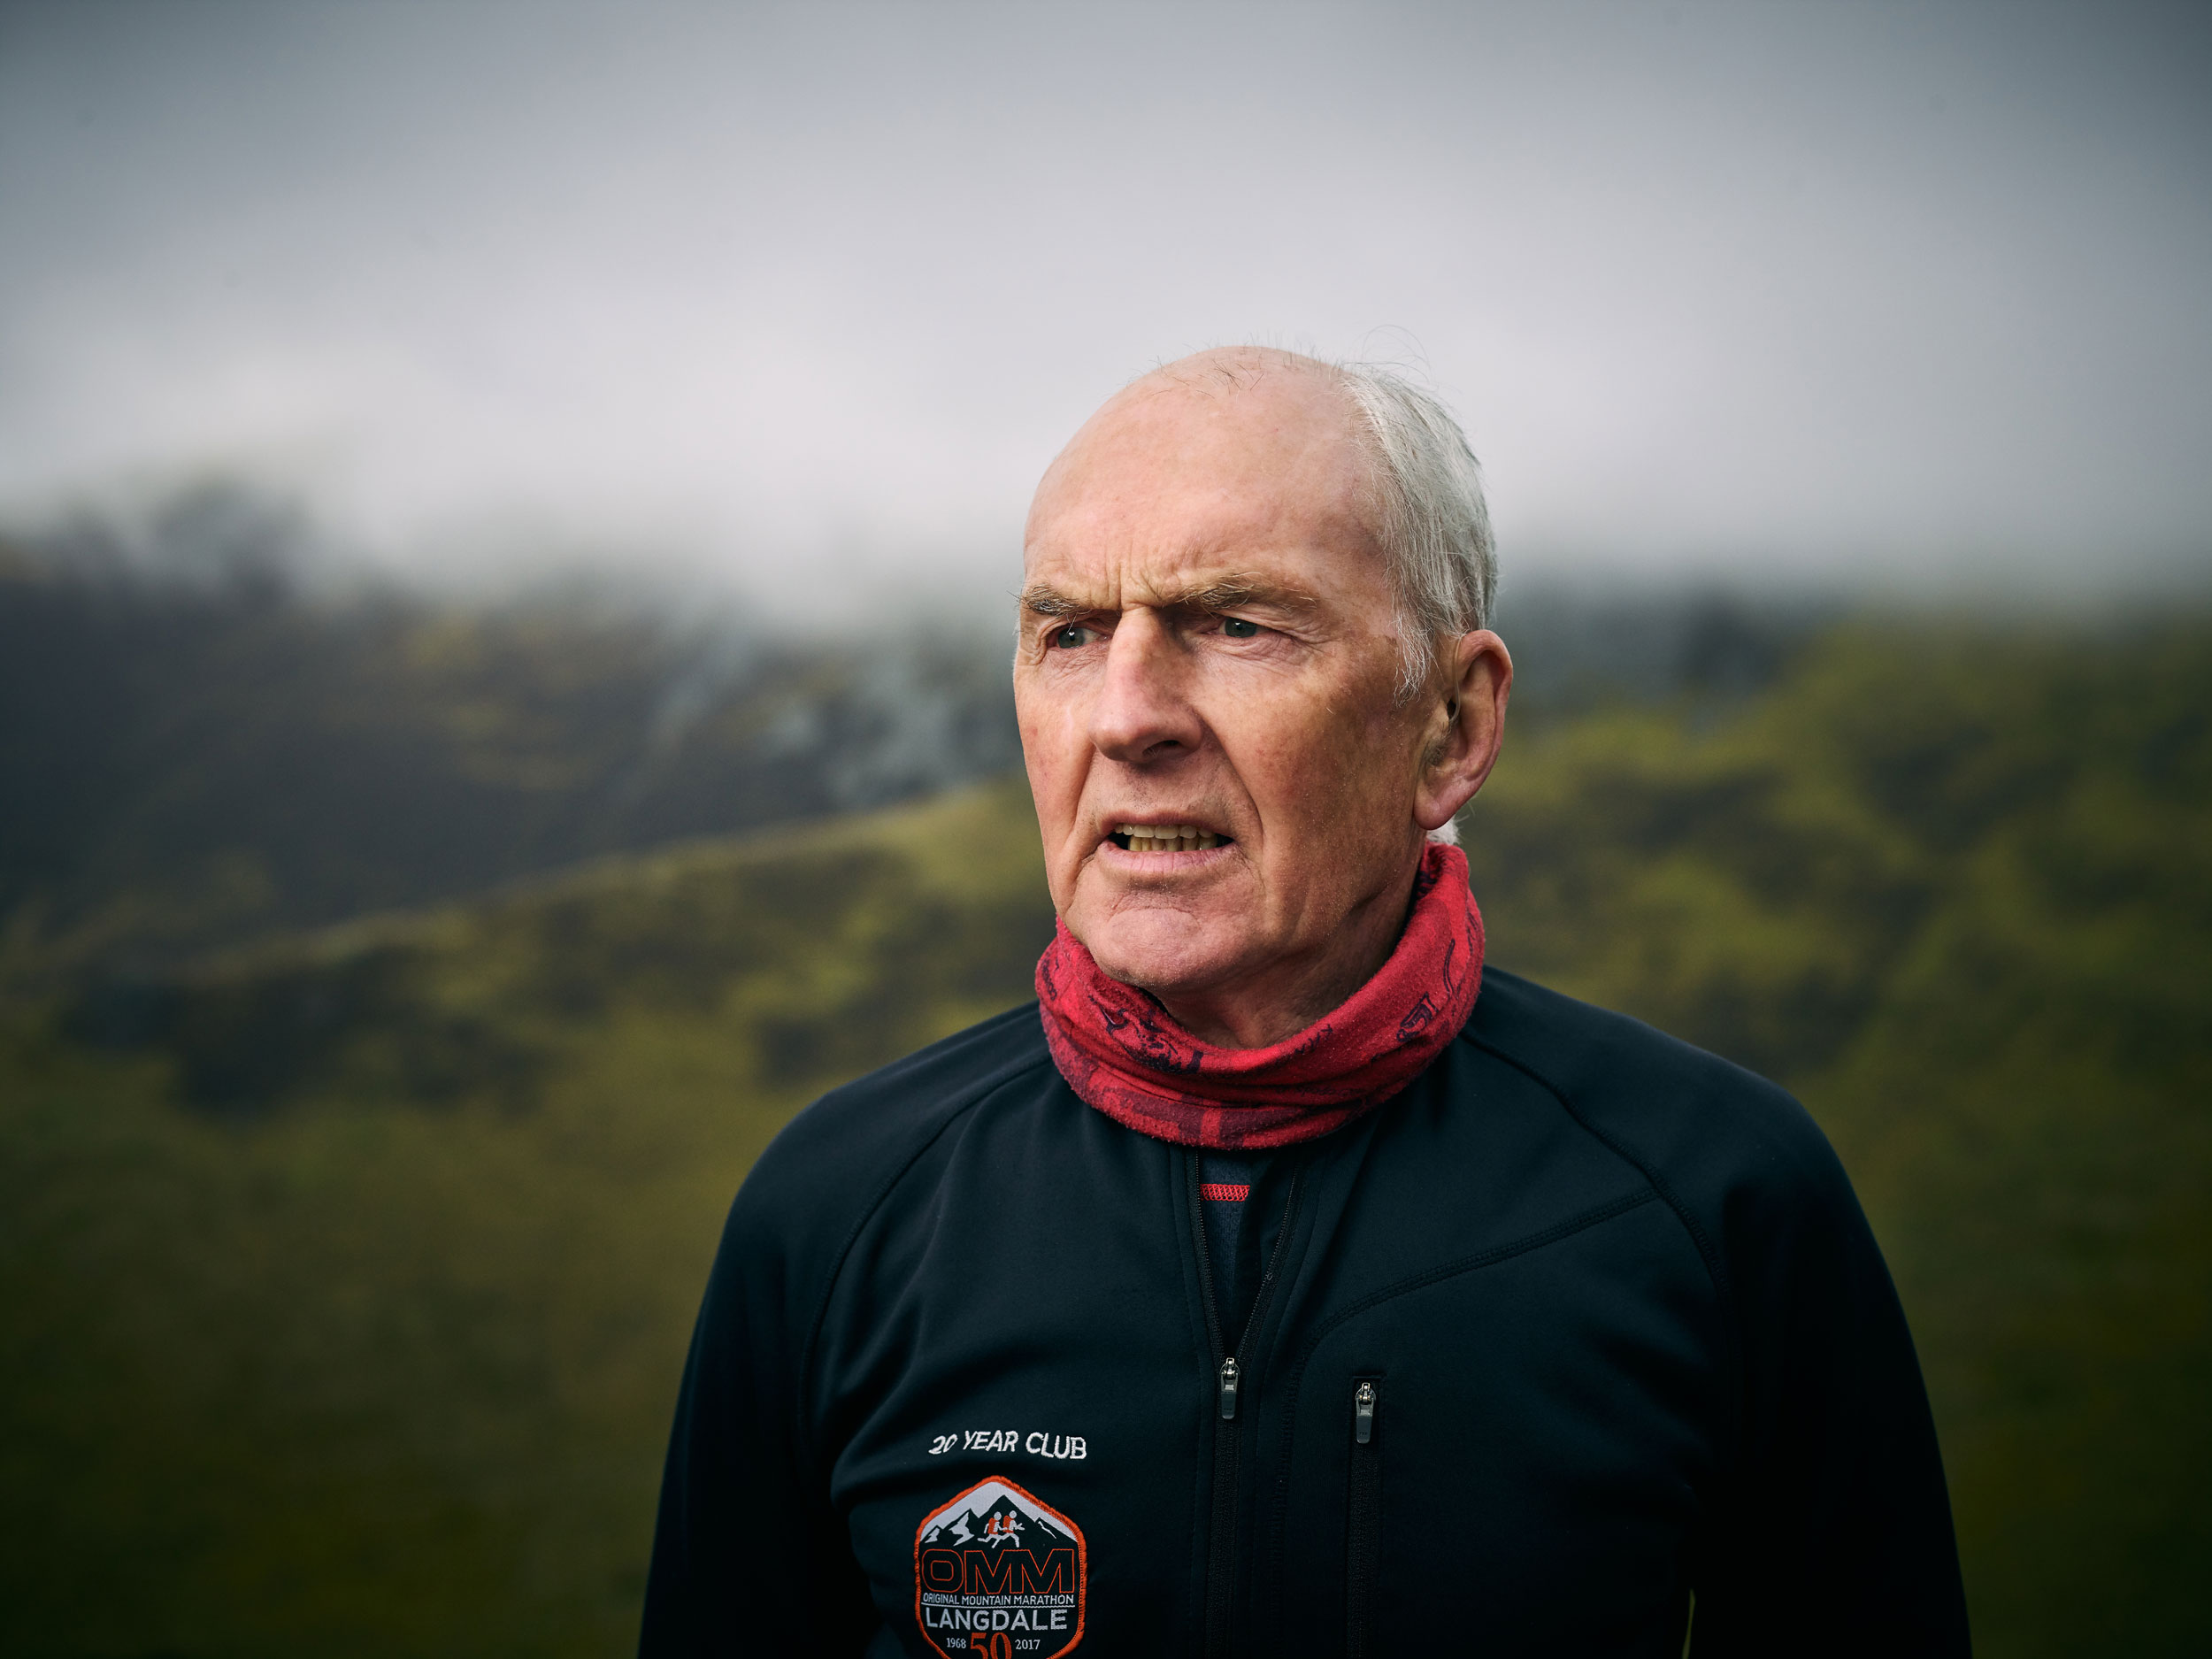 An elderly fell runner looks out over his route taken by documentary portrait photographer Duncan Elliott